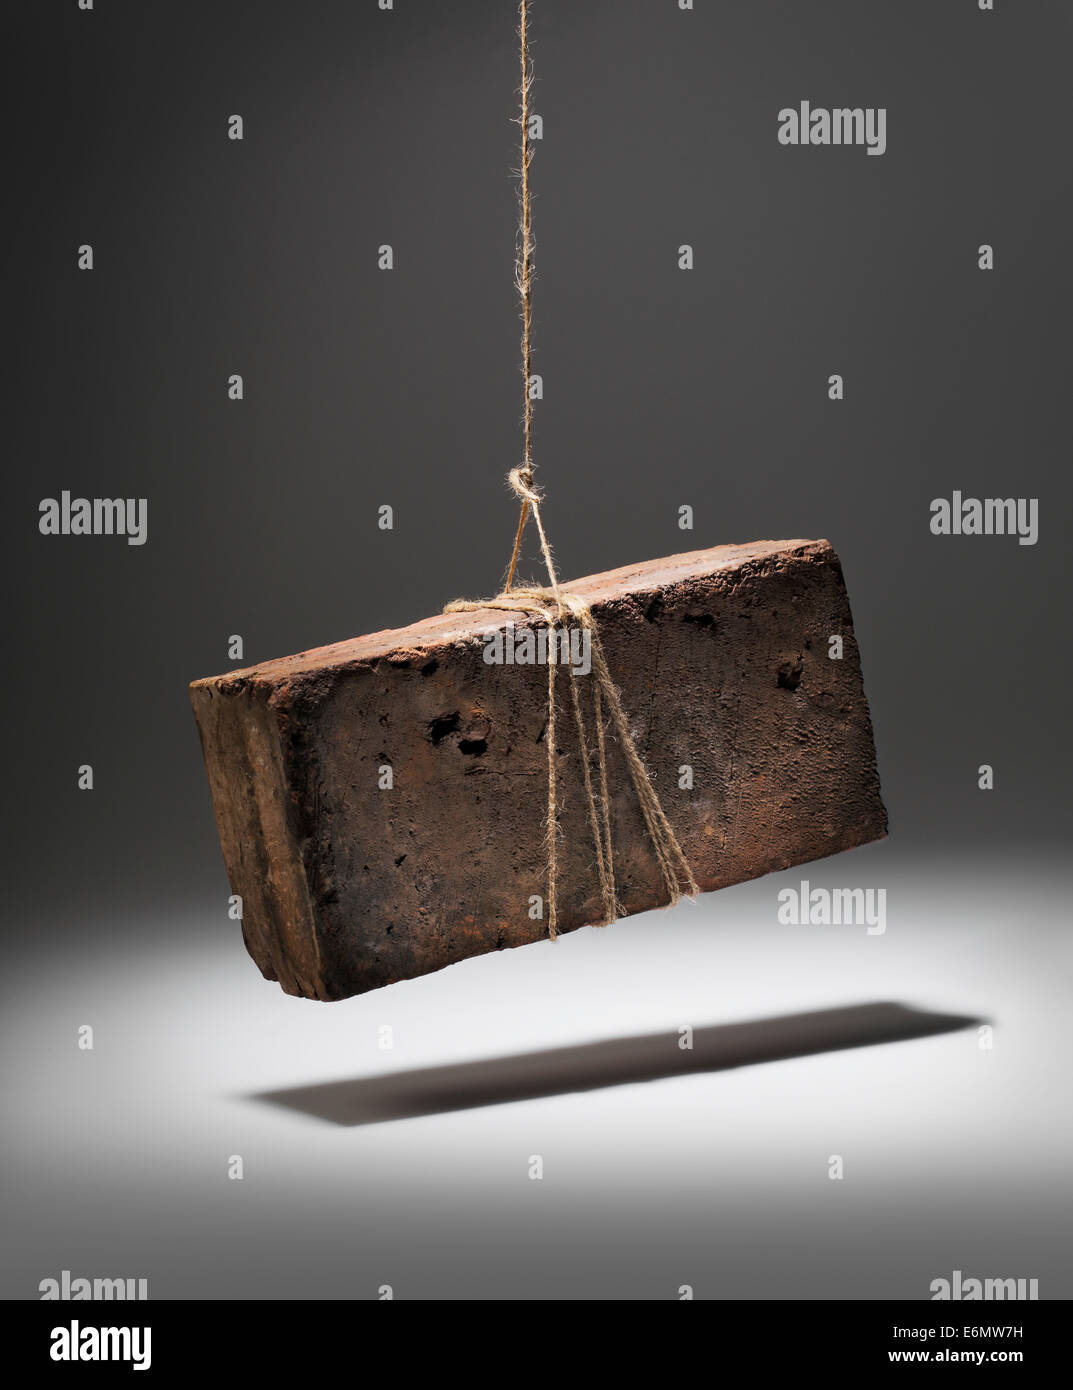 Old worn and weathered brick hanging on a string. - Stock Image